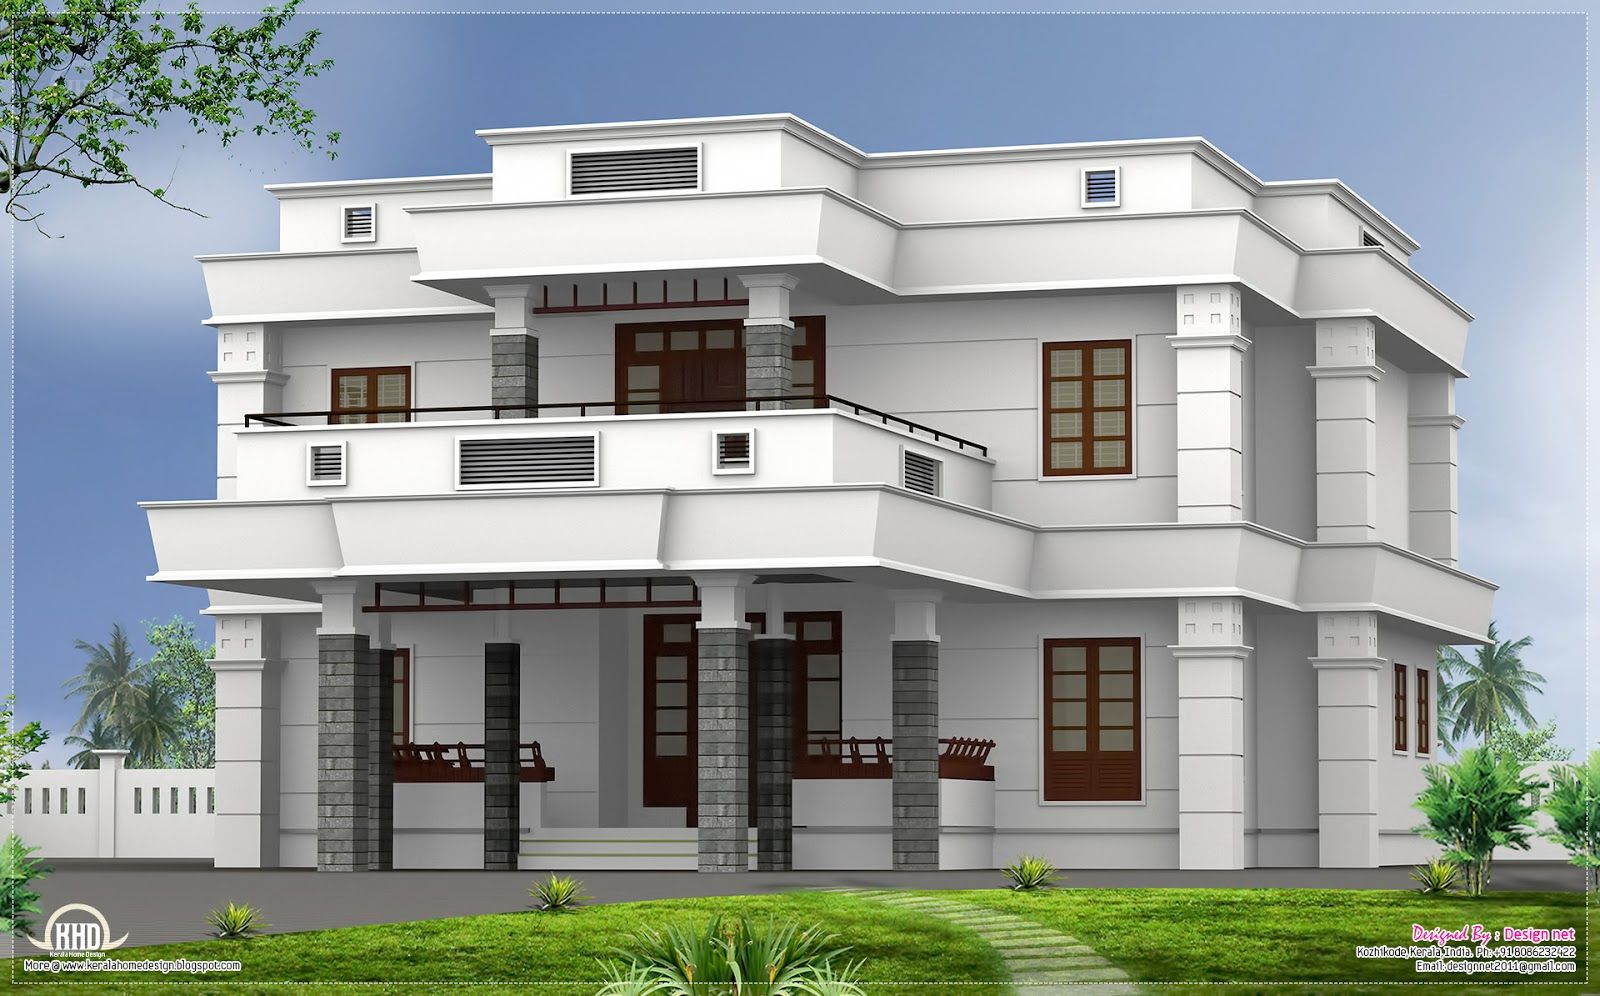 Flat roof homes designs bhk modern flat roof house Building plans indian homes